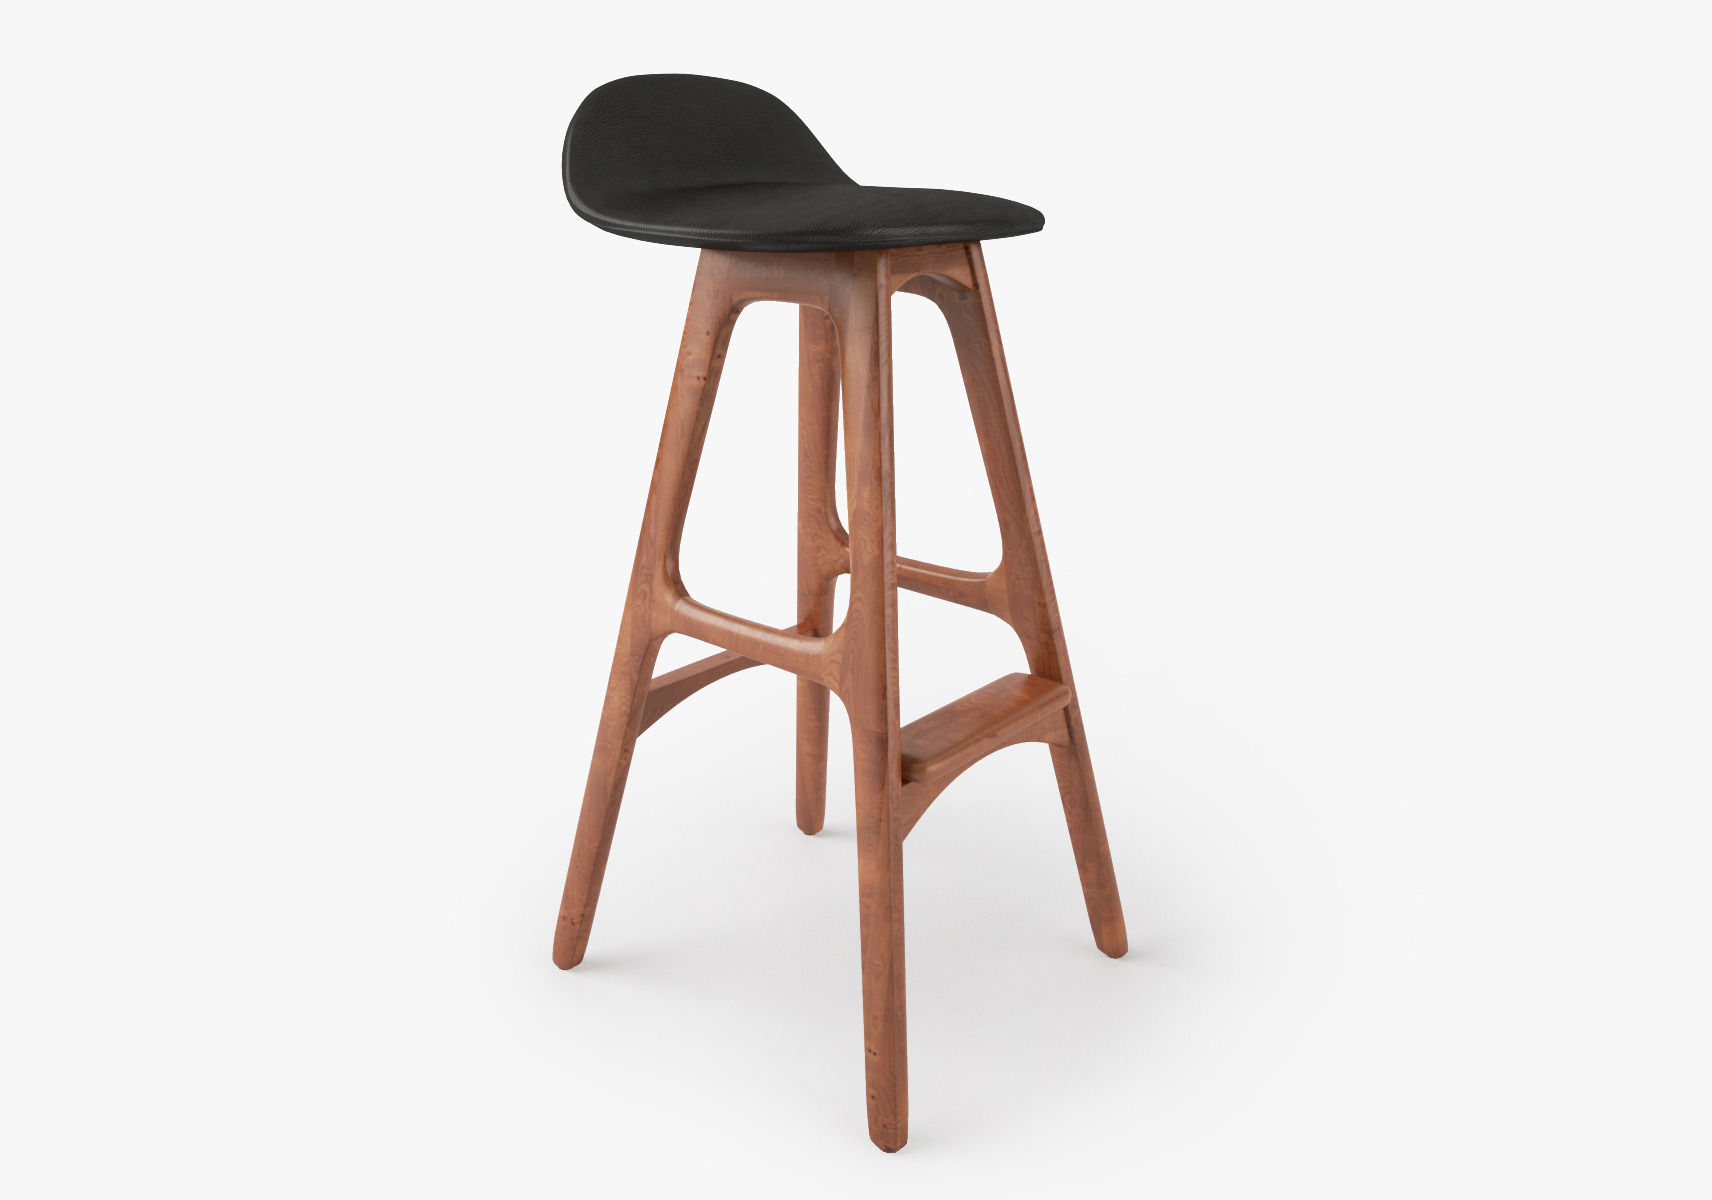 Erik Buch Bar Stool Model Max Obj Mtl Fbx Mat 1